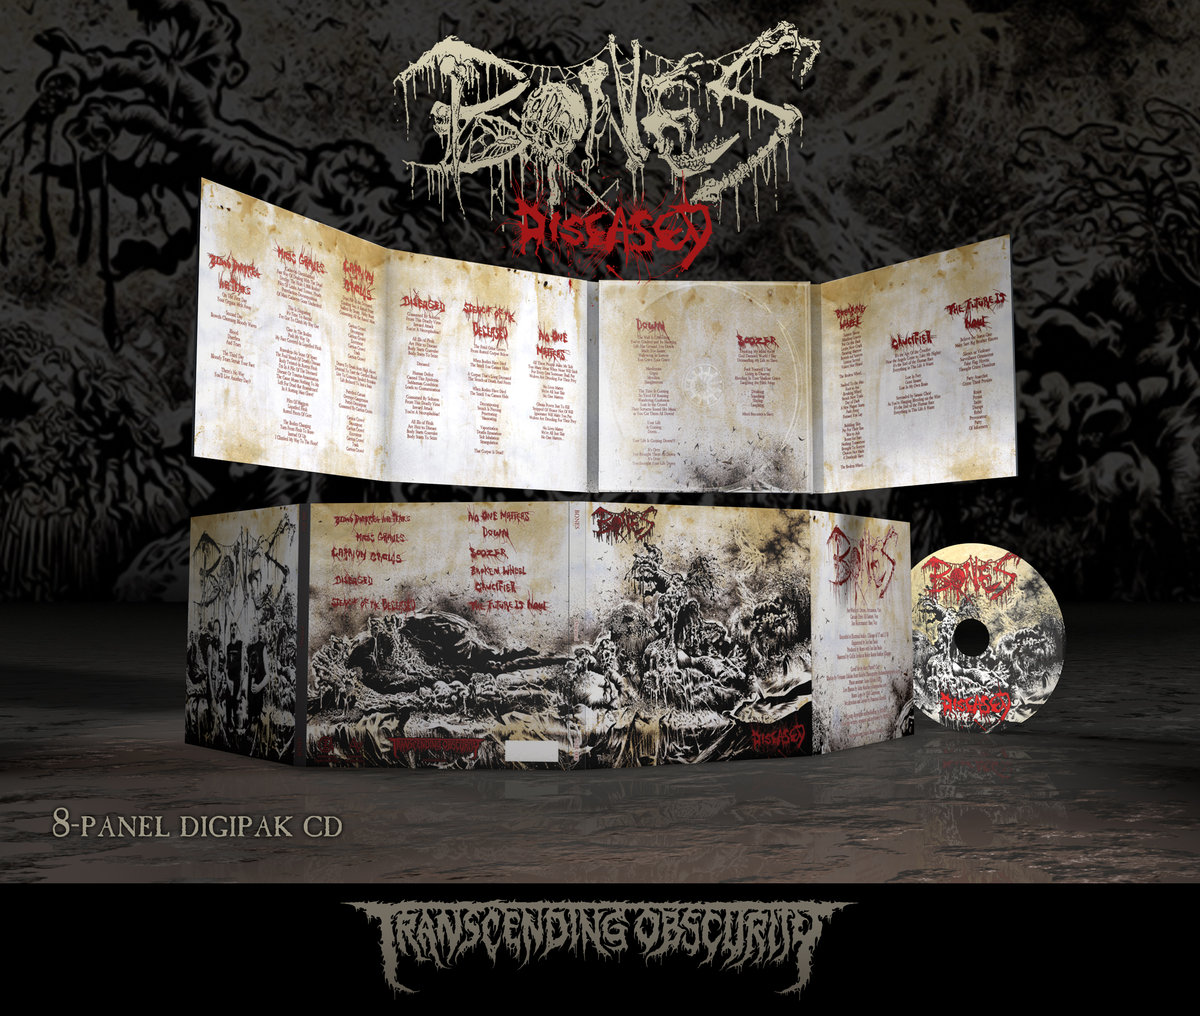 BONES - Diseased 8-Panel Digipak CD in Gold Paper (FREE BADGE WITH ALL PRE-ORDERS!)